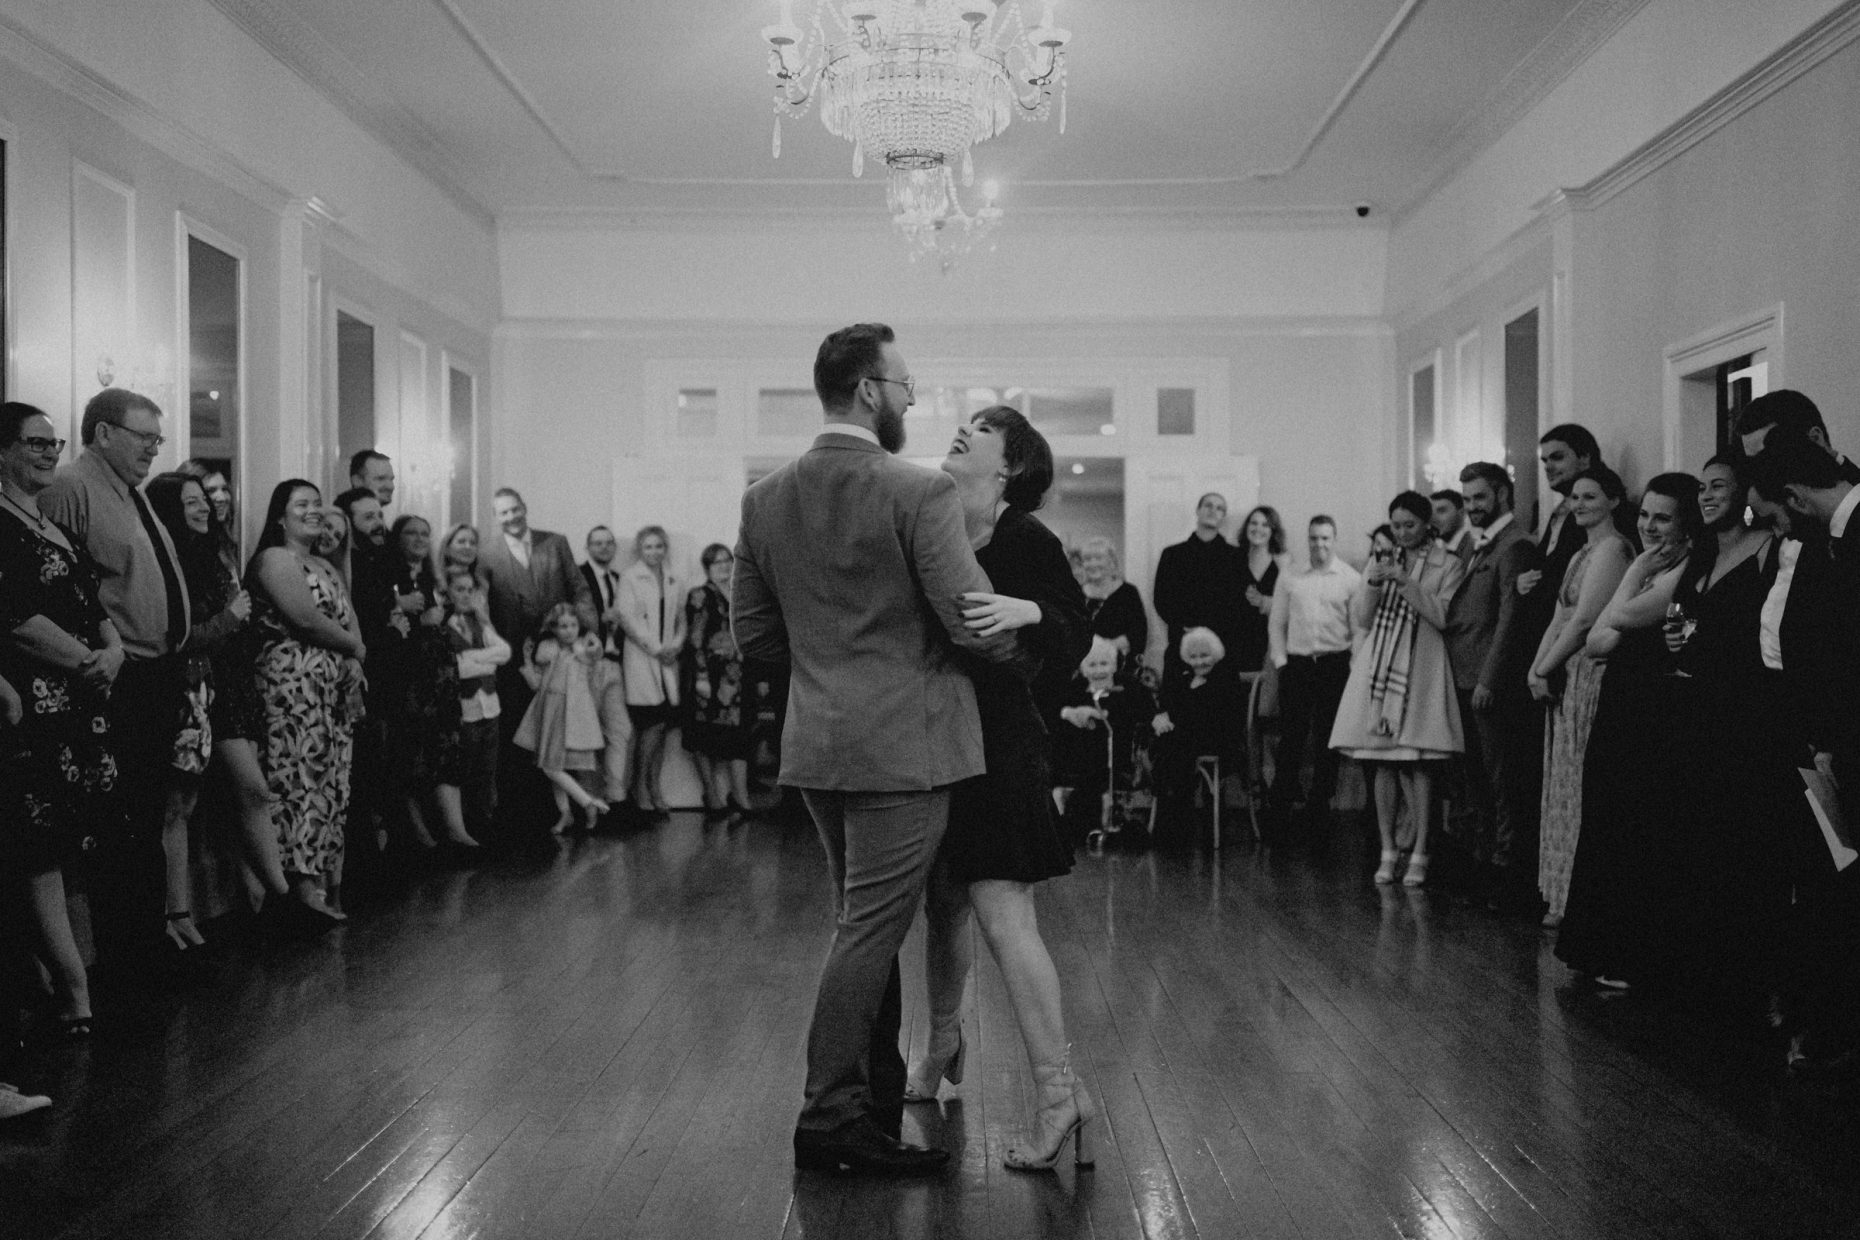 A bride and groom laugh as they dance in the middle of a hall with onlookers surrounding them